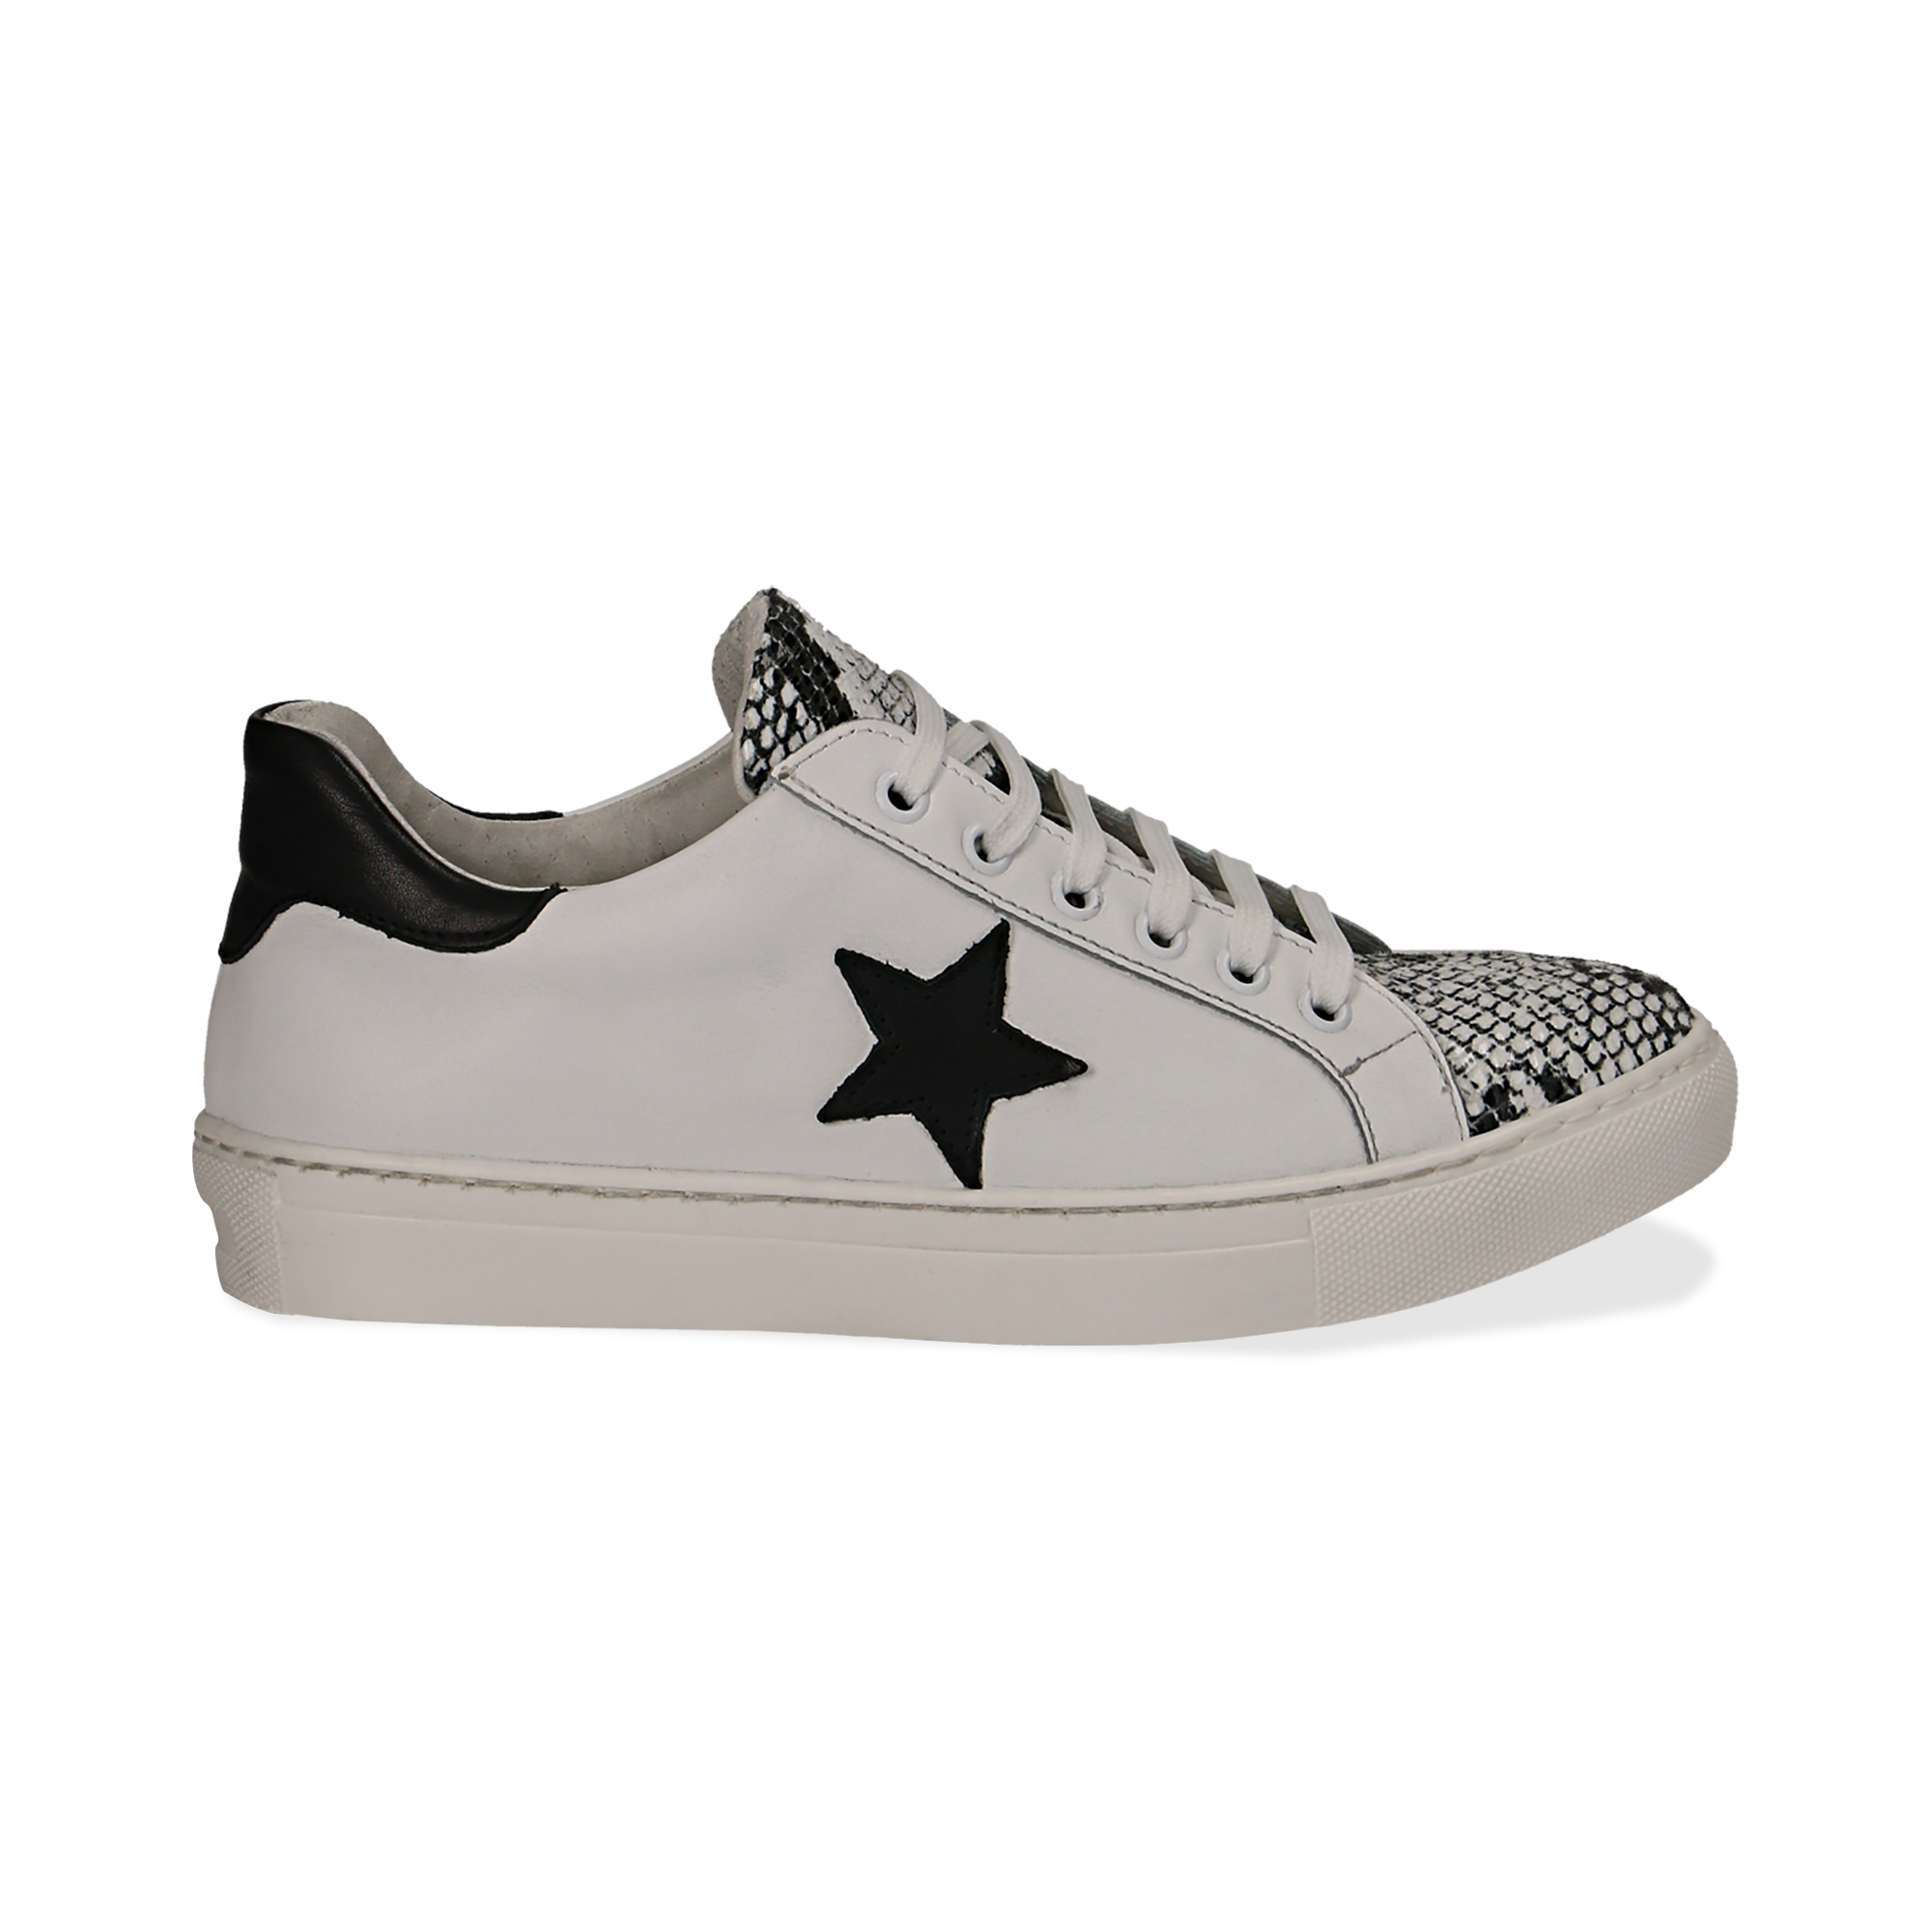 Sneakers Scarpe Collection Primadonna Sneakers Donna Collection Donna Primadonna Scarpe Collection Scarpe Sneakers Donna Primadonna Scarpe xgwq8gBR